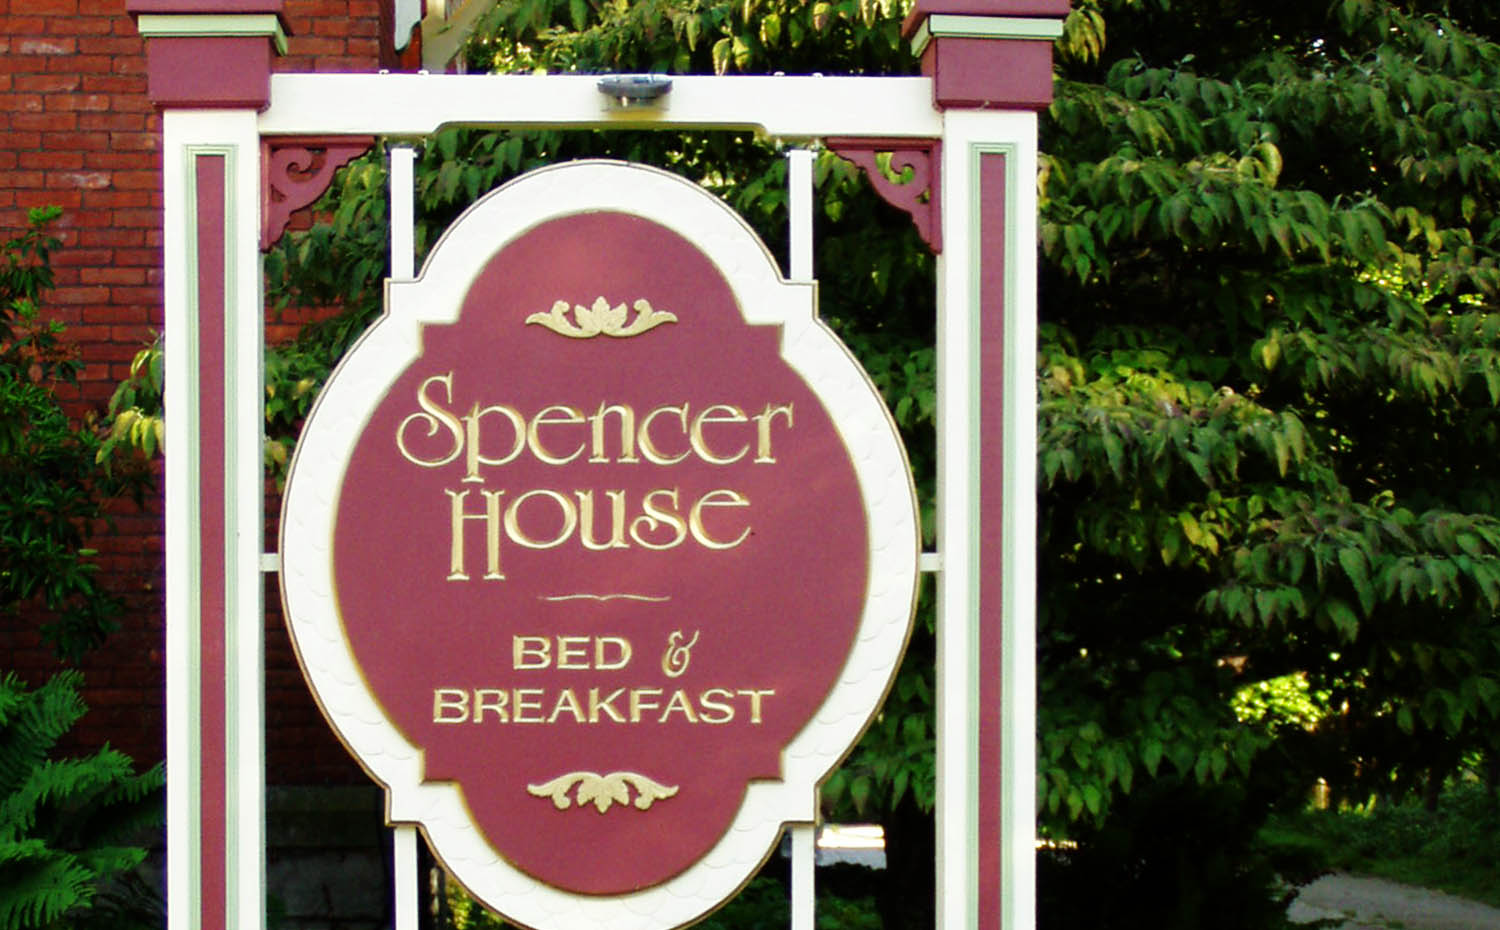 The Spencer House Sign in the front yard